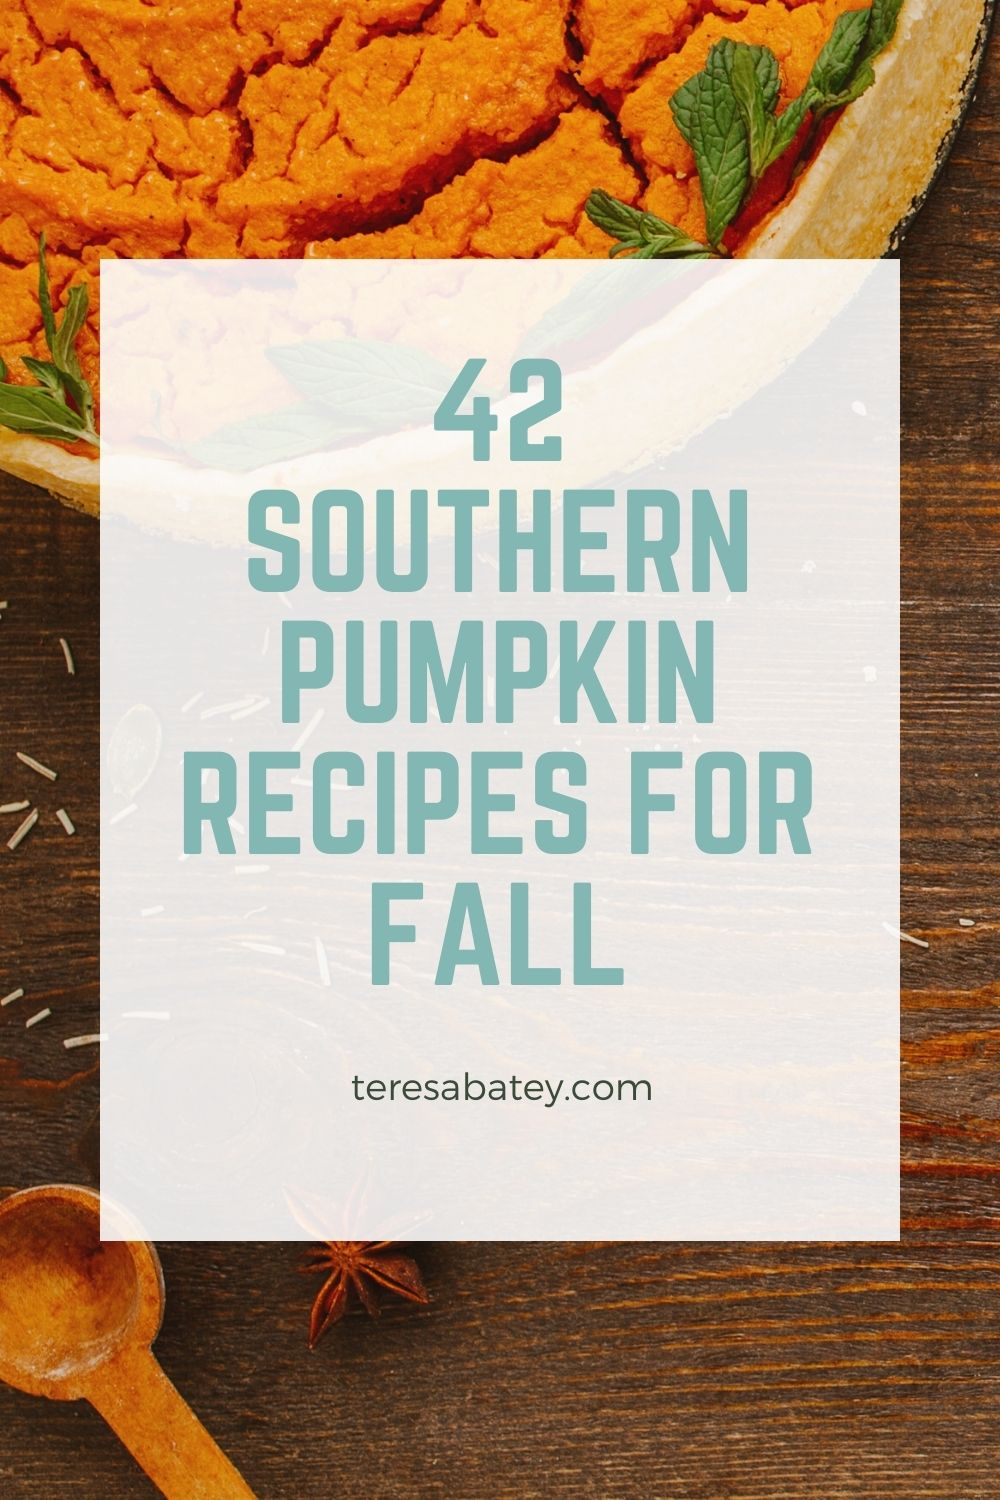 42 Southern Pumpkin Recipes for Fall